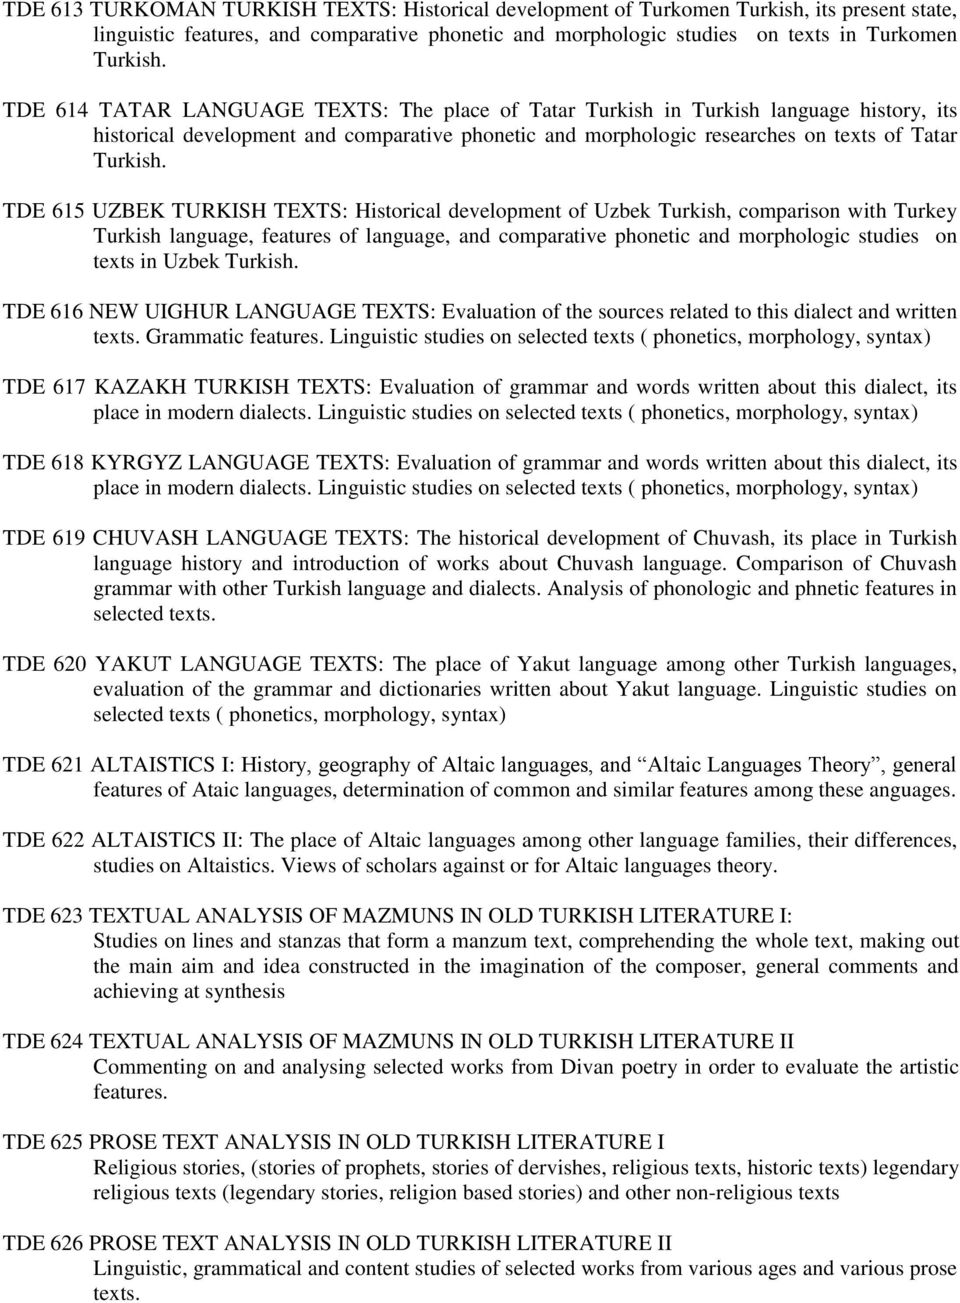 TDE 615 UZBEK TURKISH TEXTS: Historical development of Uzbek Turkish, comparison with Turkey Turkish language, features of language, and comparative phonetic and morphologic studies on texts in Uzbek